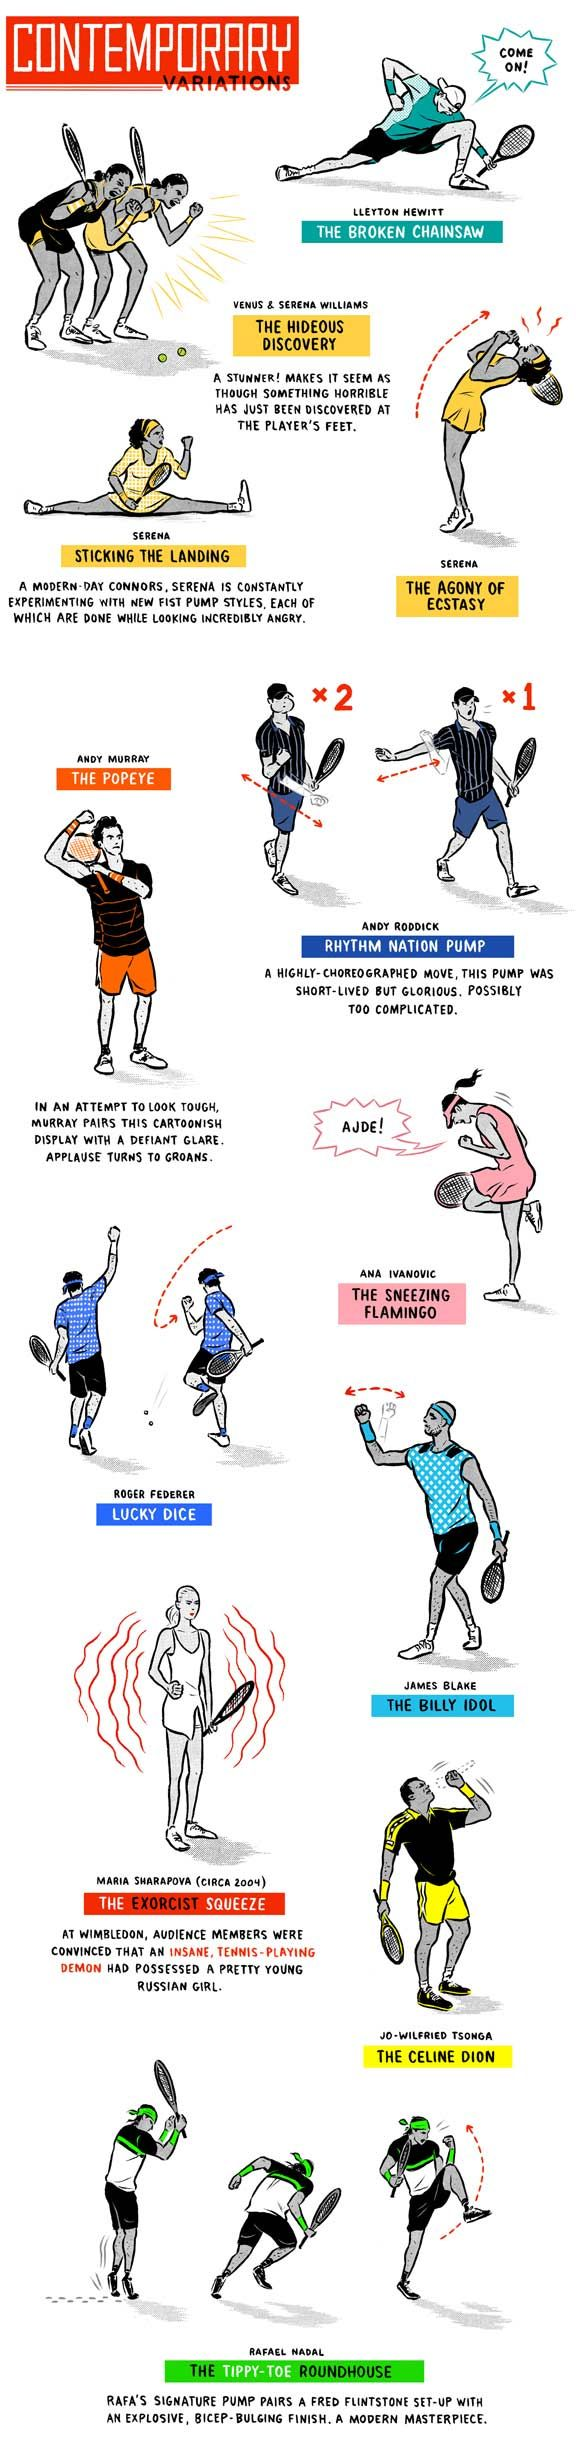 """The Fist Pump in Tennis: a Style Guide"" (Contemporary Variations) This is hilarious."